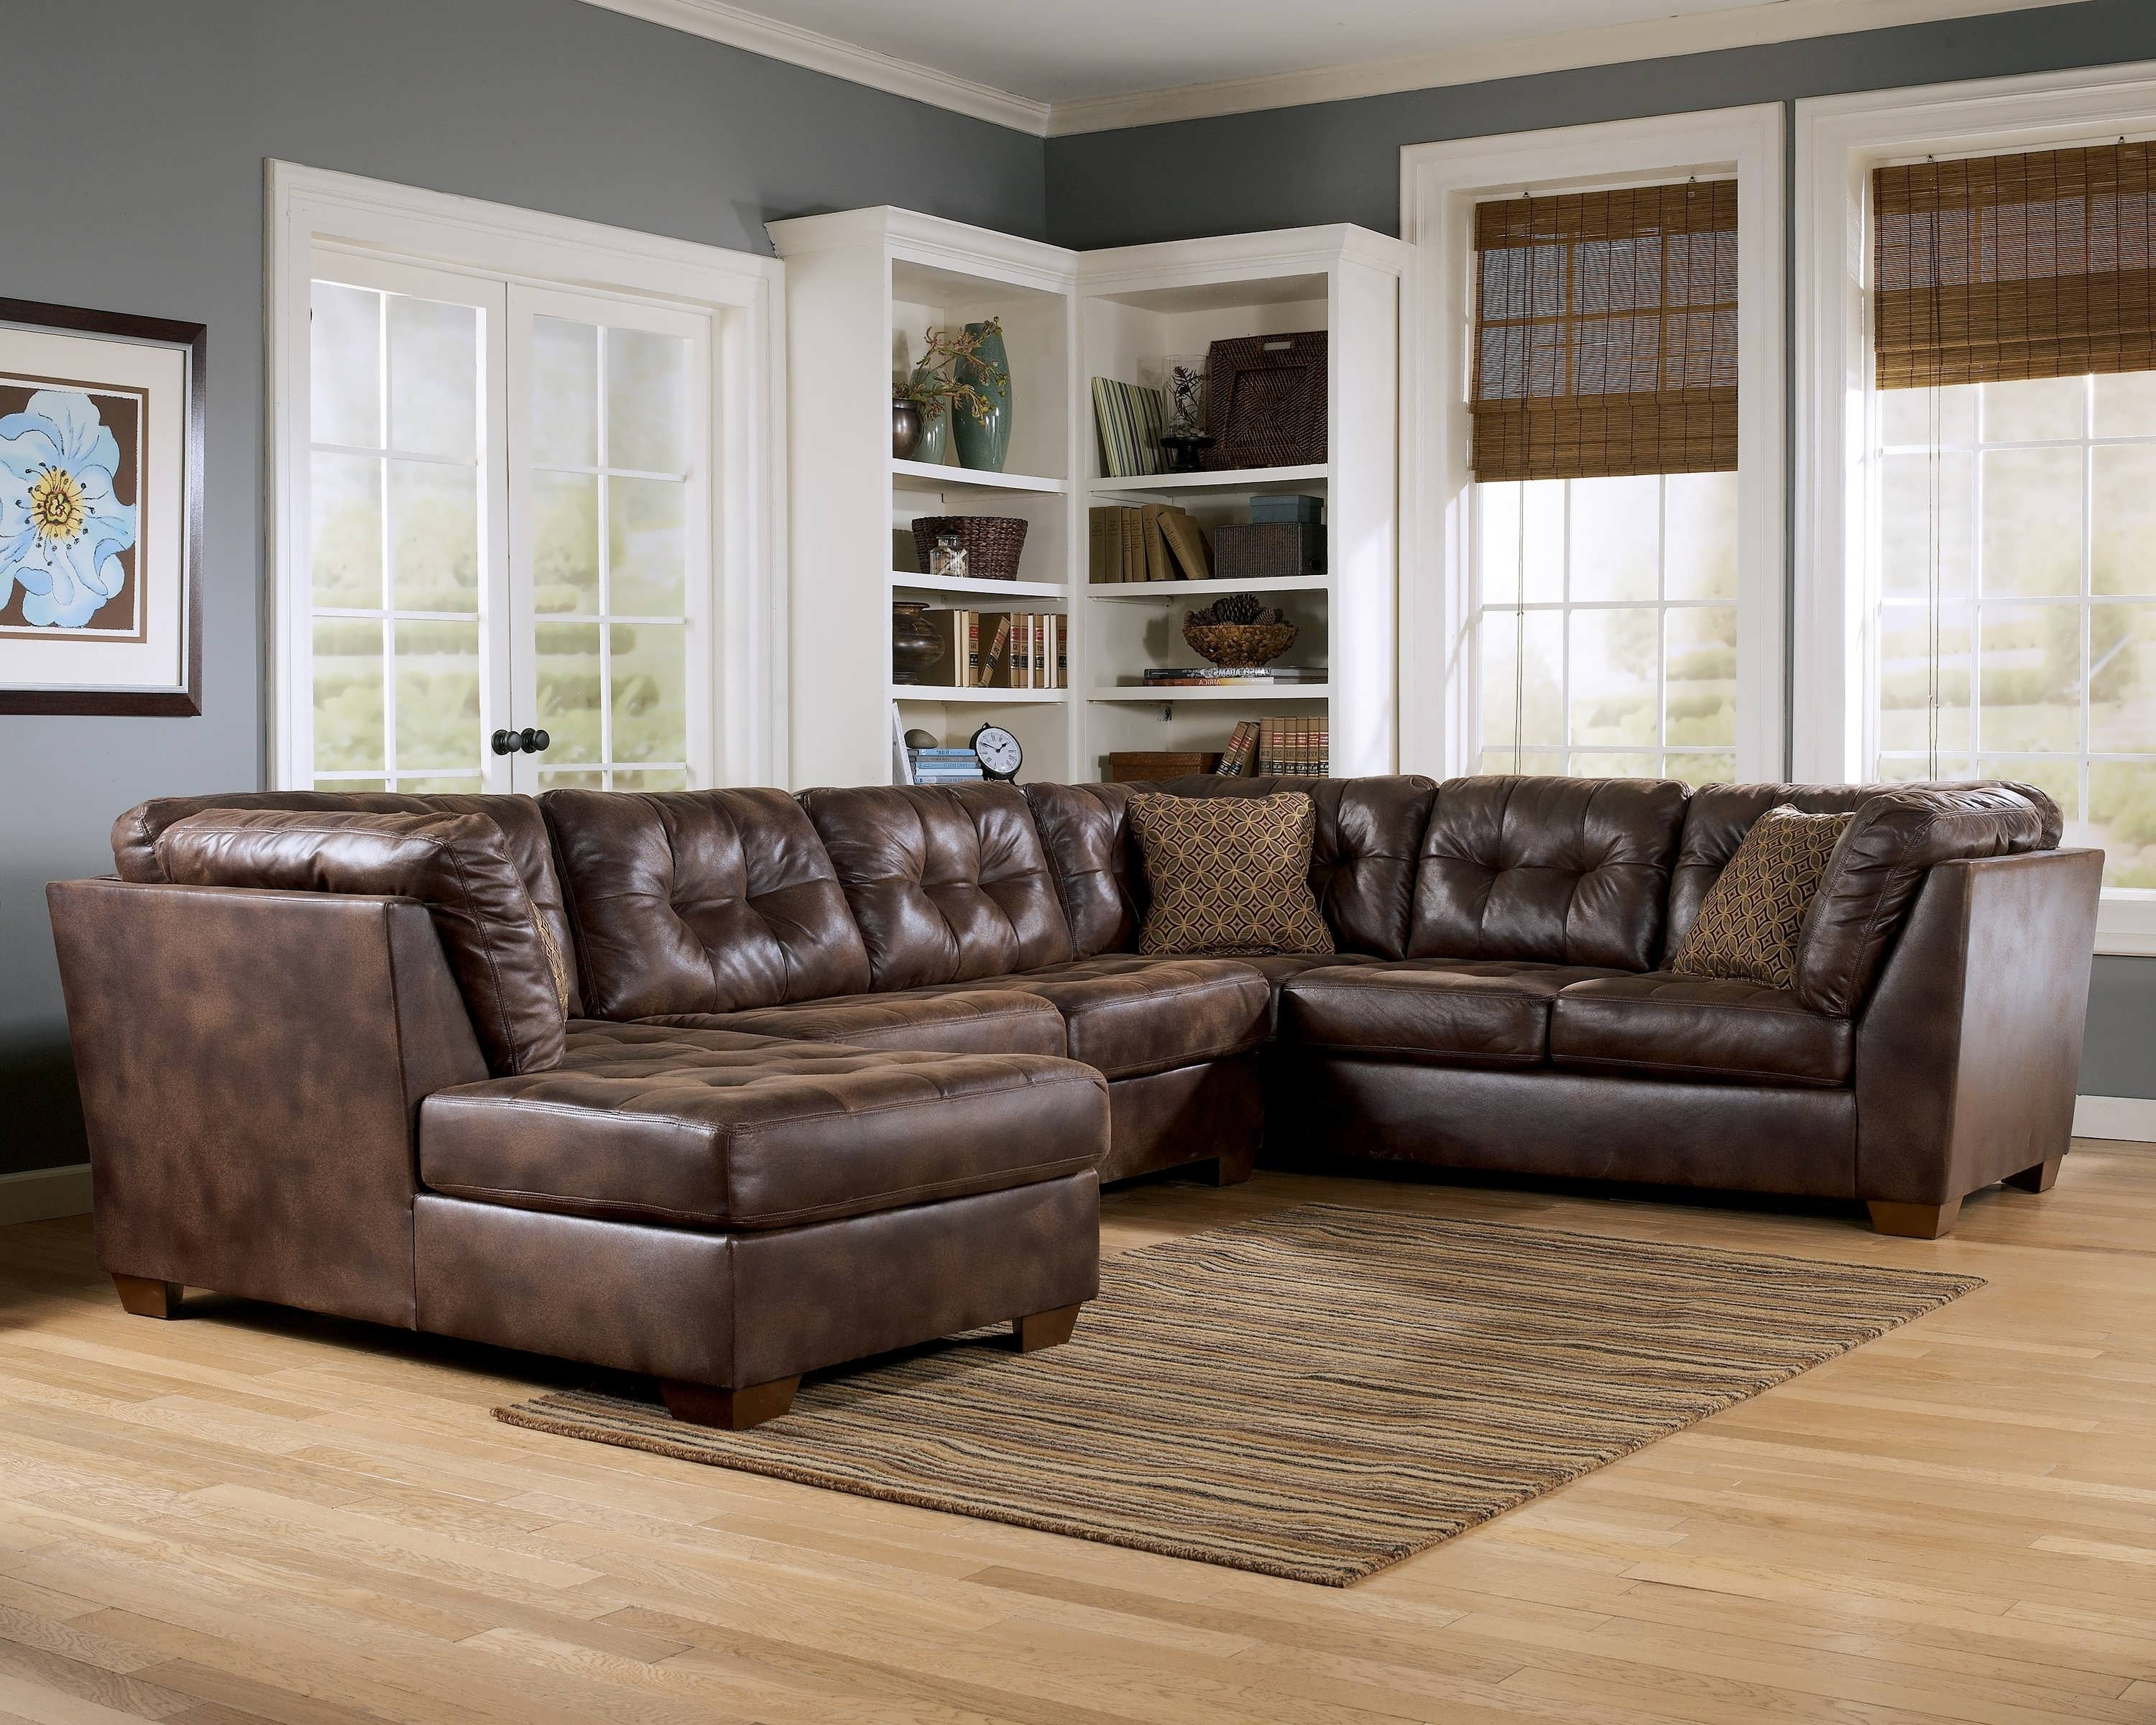 Trendy Sofa Leather Sectional Sofas Collection Of Brown Black Couch For With Regard To Memphis Tn Sectional Sofas (View 3 of 15)